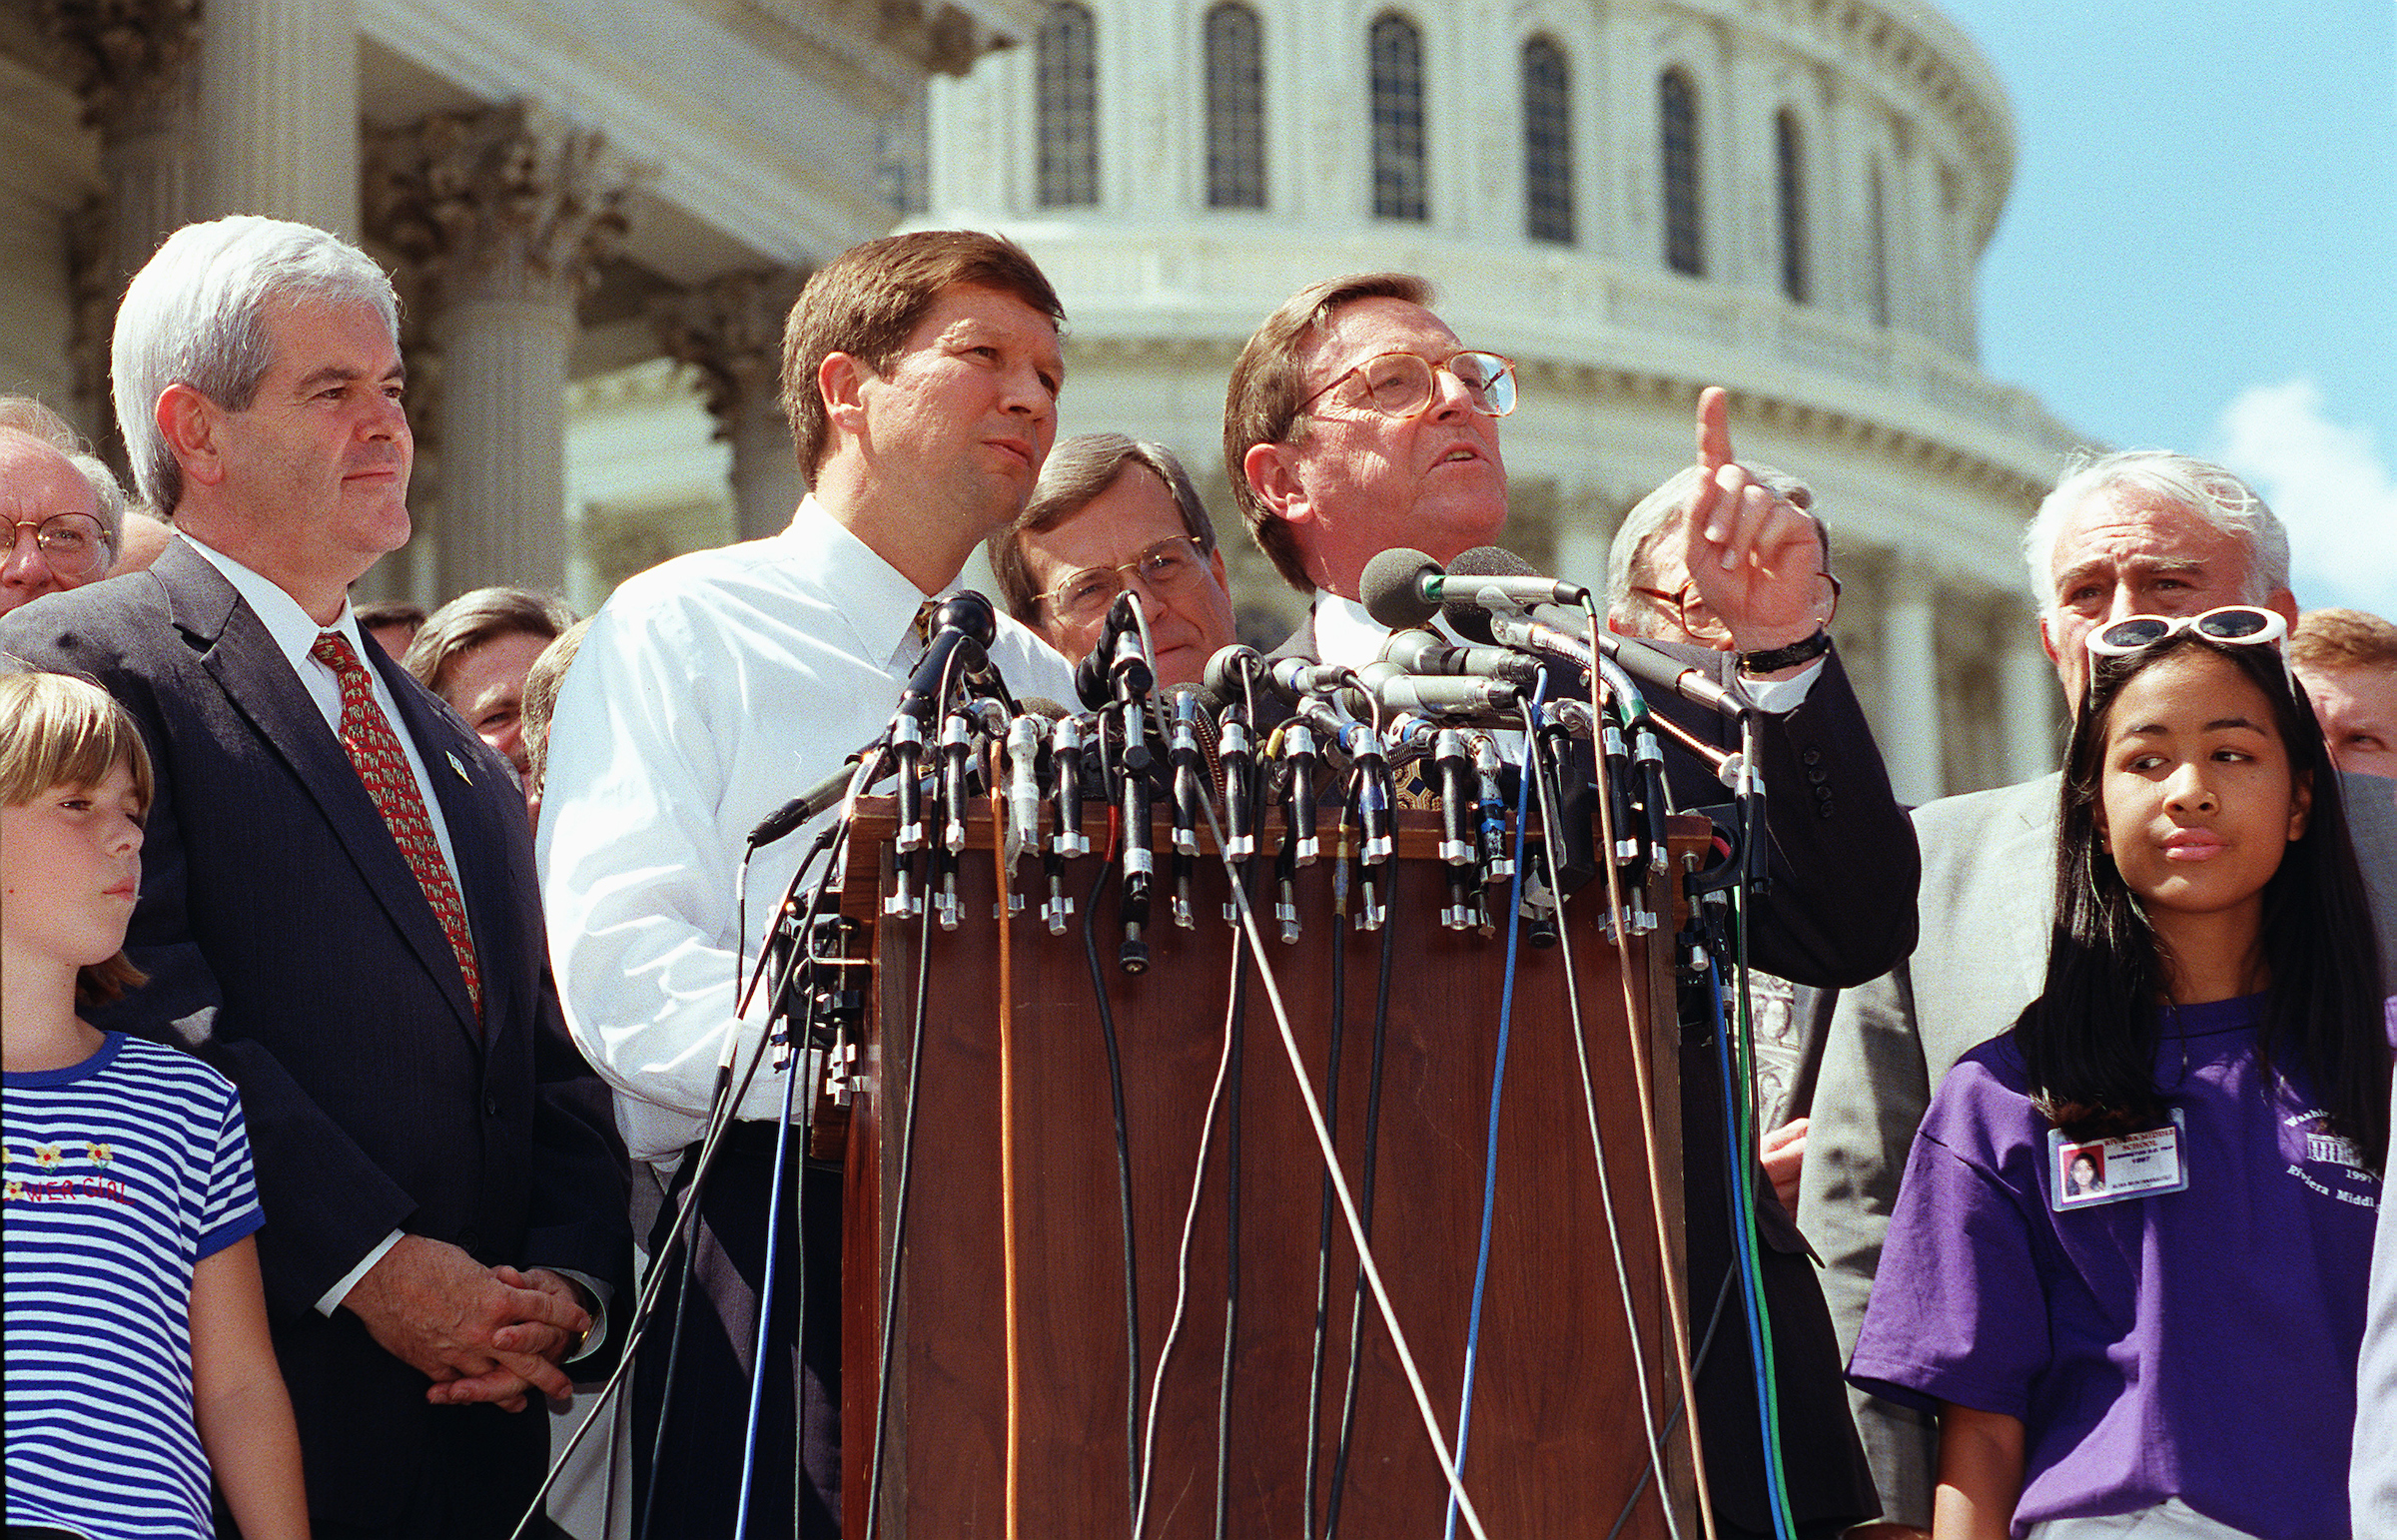 Senate Budget Chairman Pete Domenici, R-N.M., speaking, and House Speaker Newt Gingrich, R-Ga., House Budget Chairman John Kasich, R-Ohio, on July 20, 1997 at a GOP celebration on the House steps of the budget and tax agreement with the White House. (SCOTT J. FERRELL/CQ file photo)